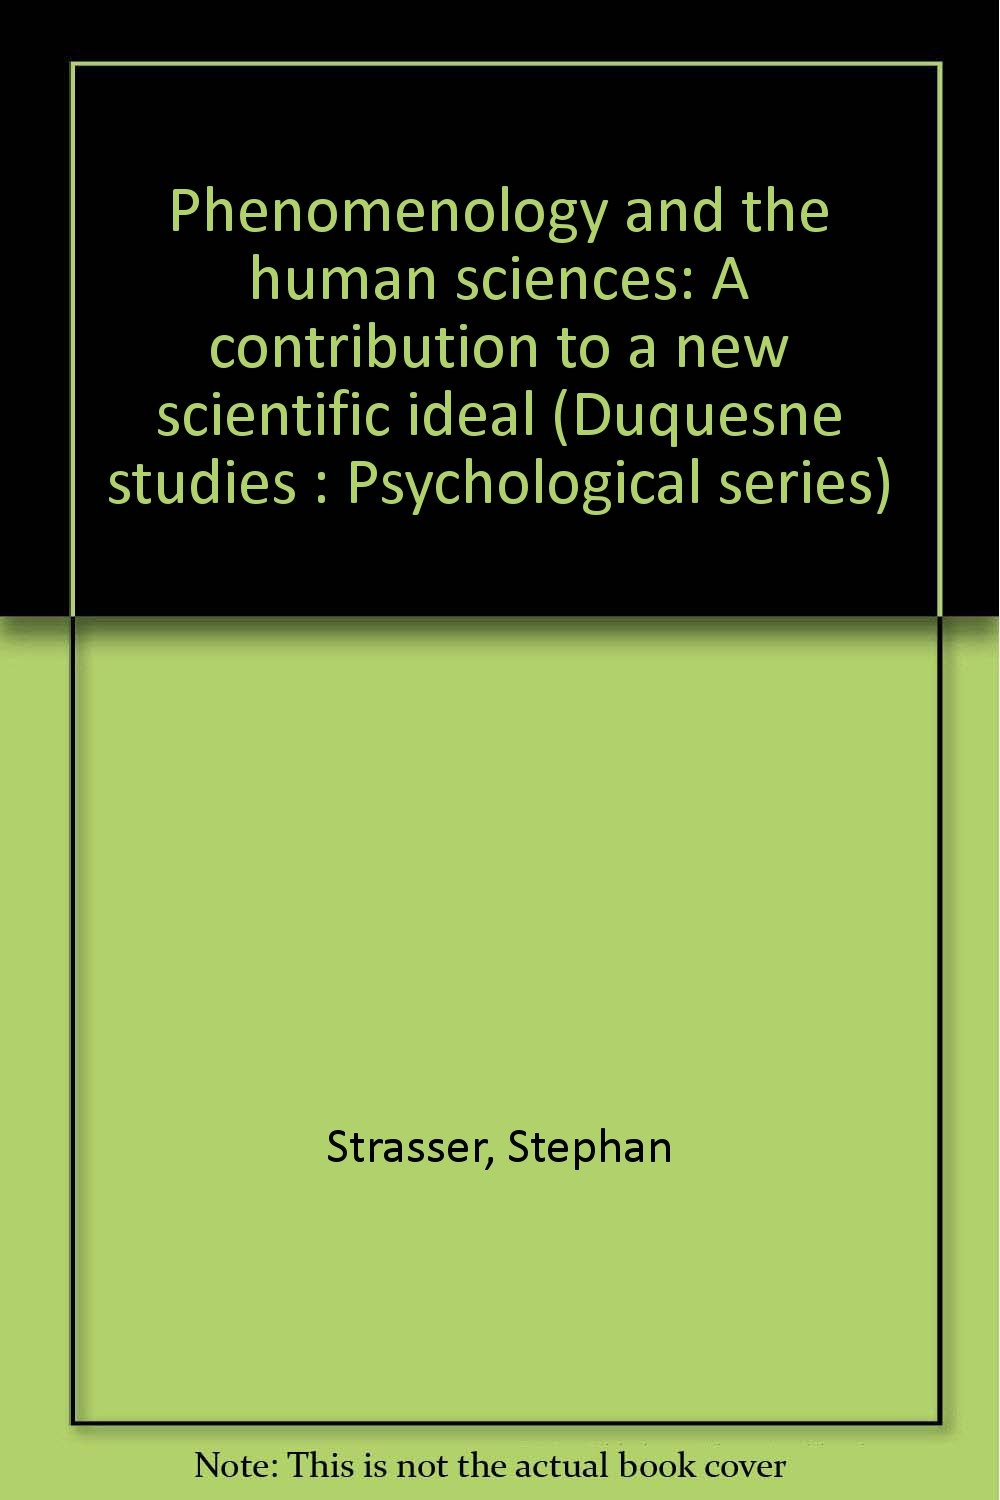 Phenomenology and the Human Sciences